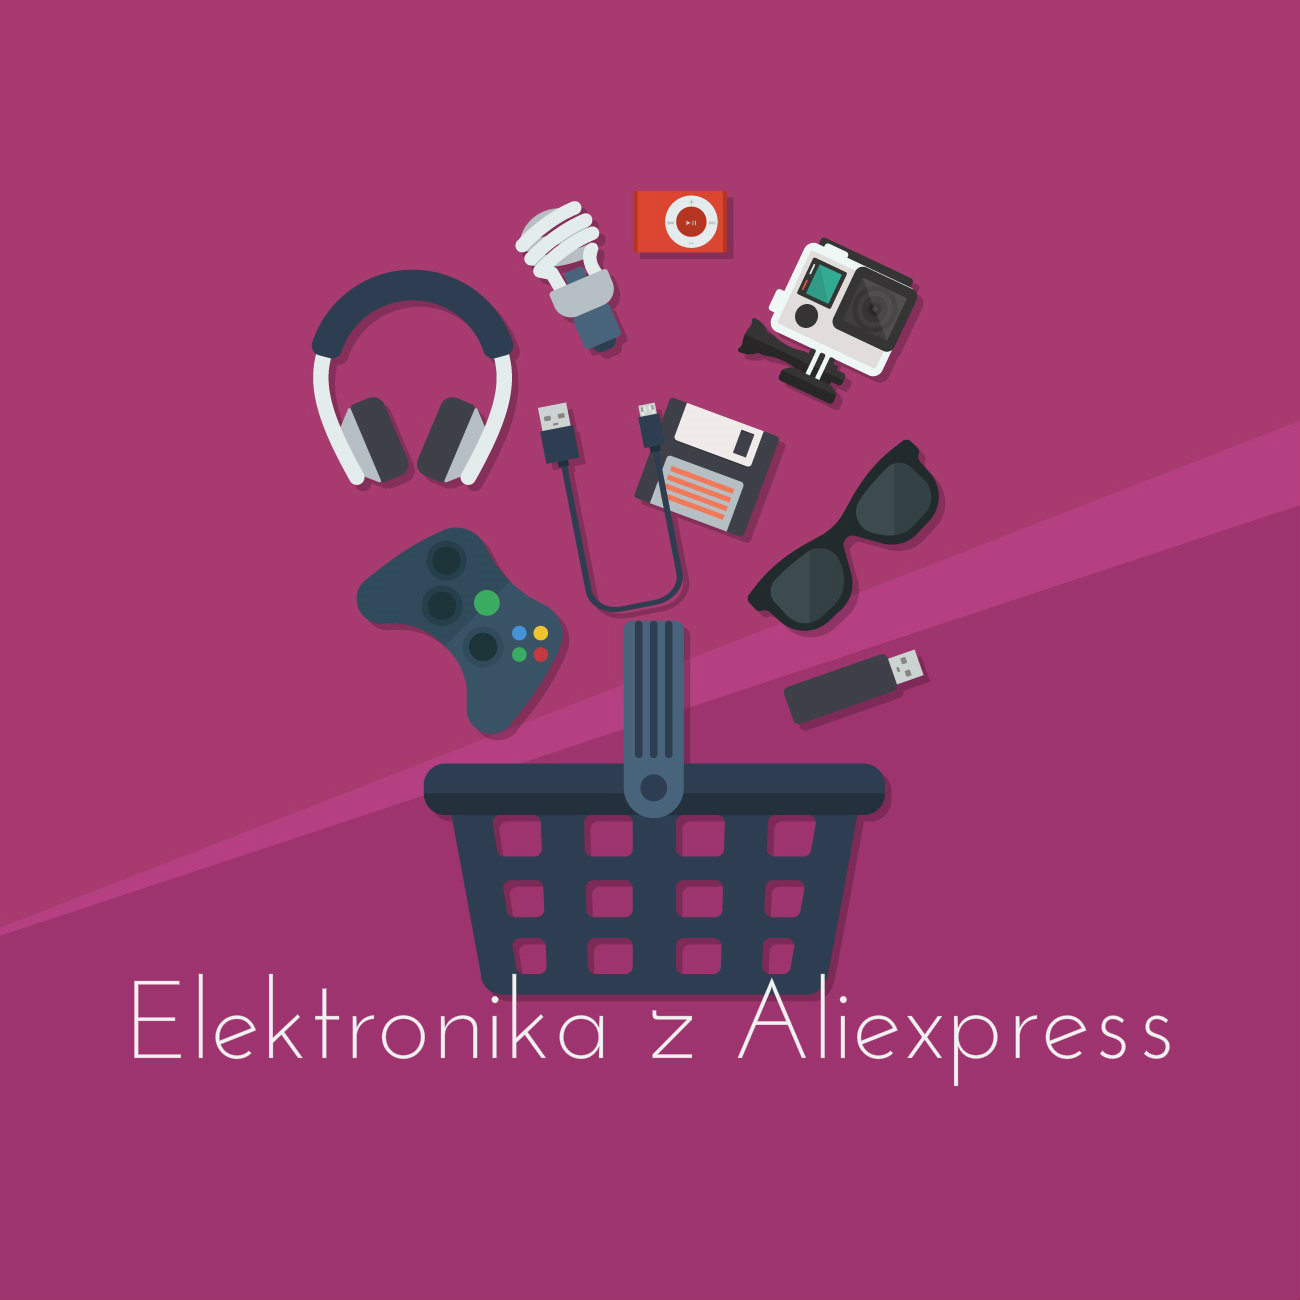 Elektronika z Aliexpress